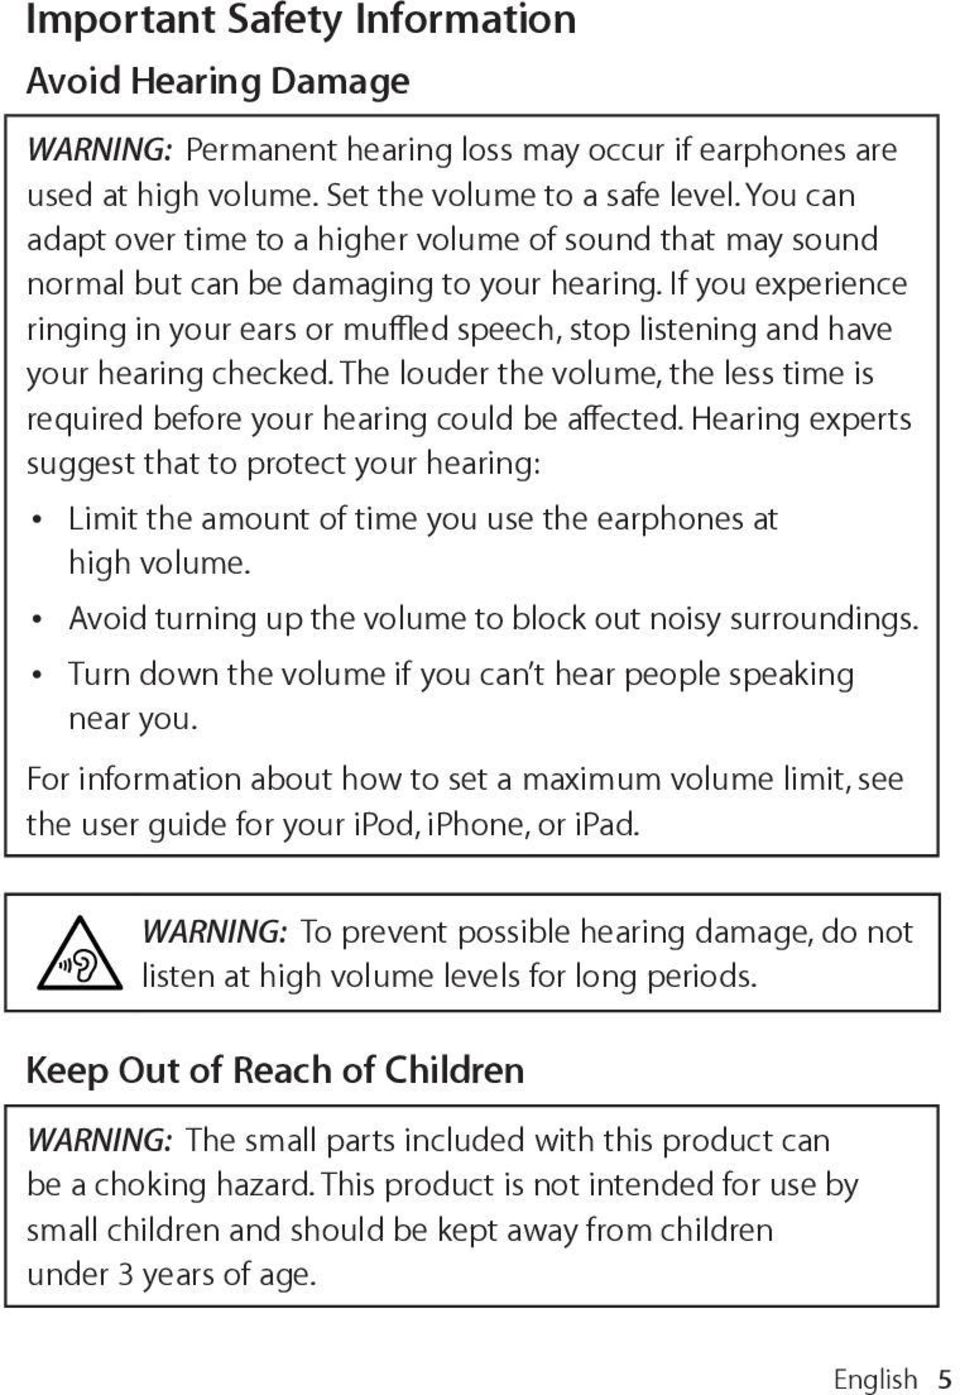 If you experience ringing in your ears or muffled speech, stop listening and have your hearing checked. The louder the volume, the less time is required before your hearing could be affected.